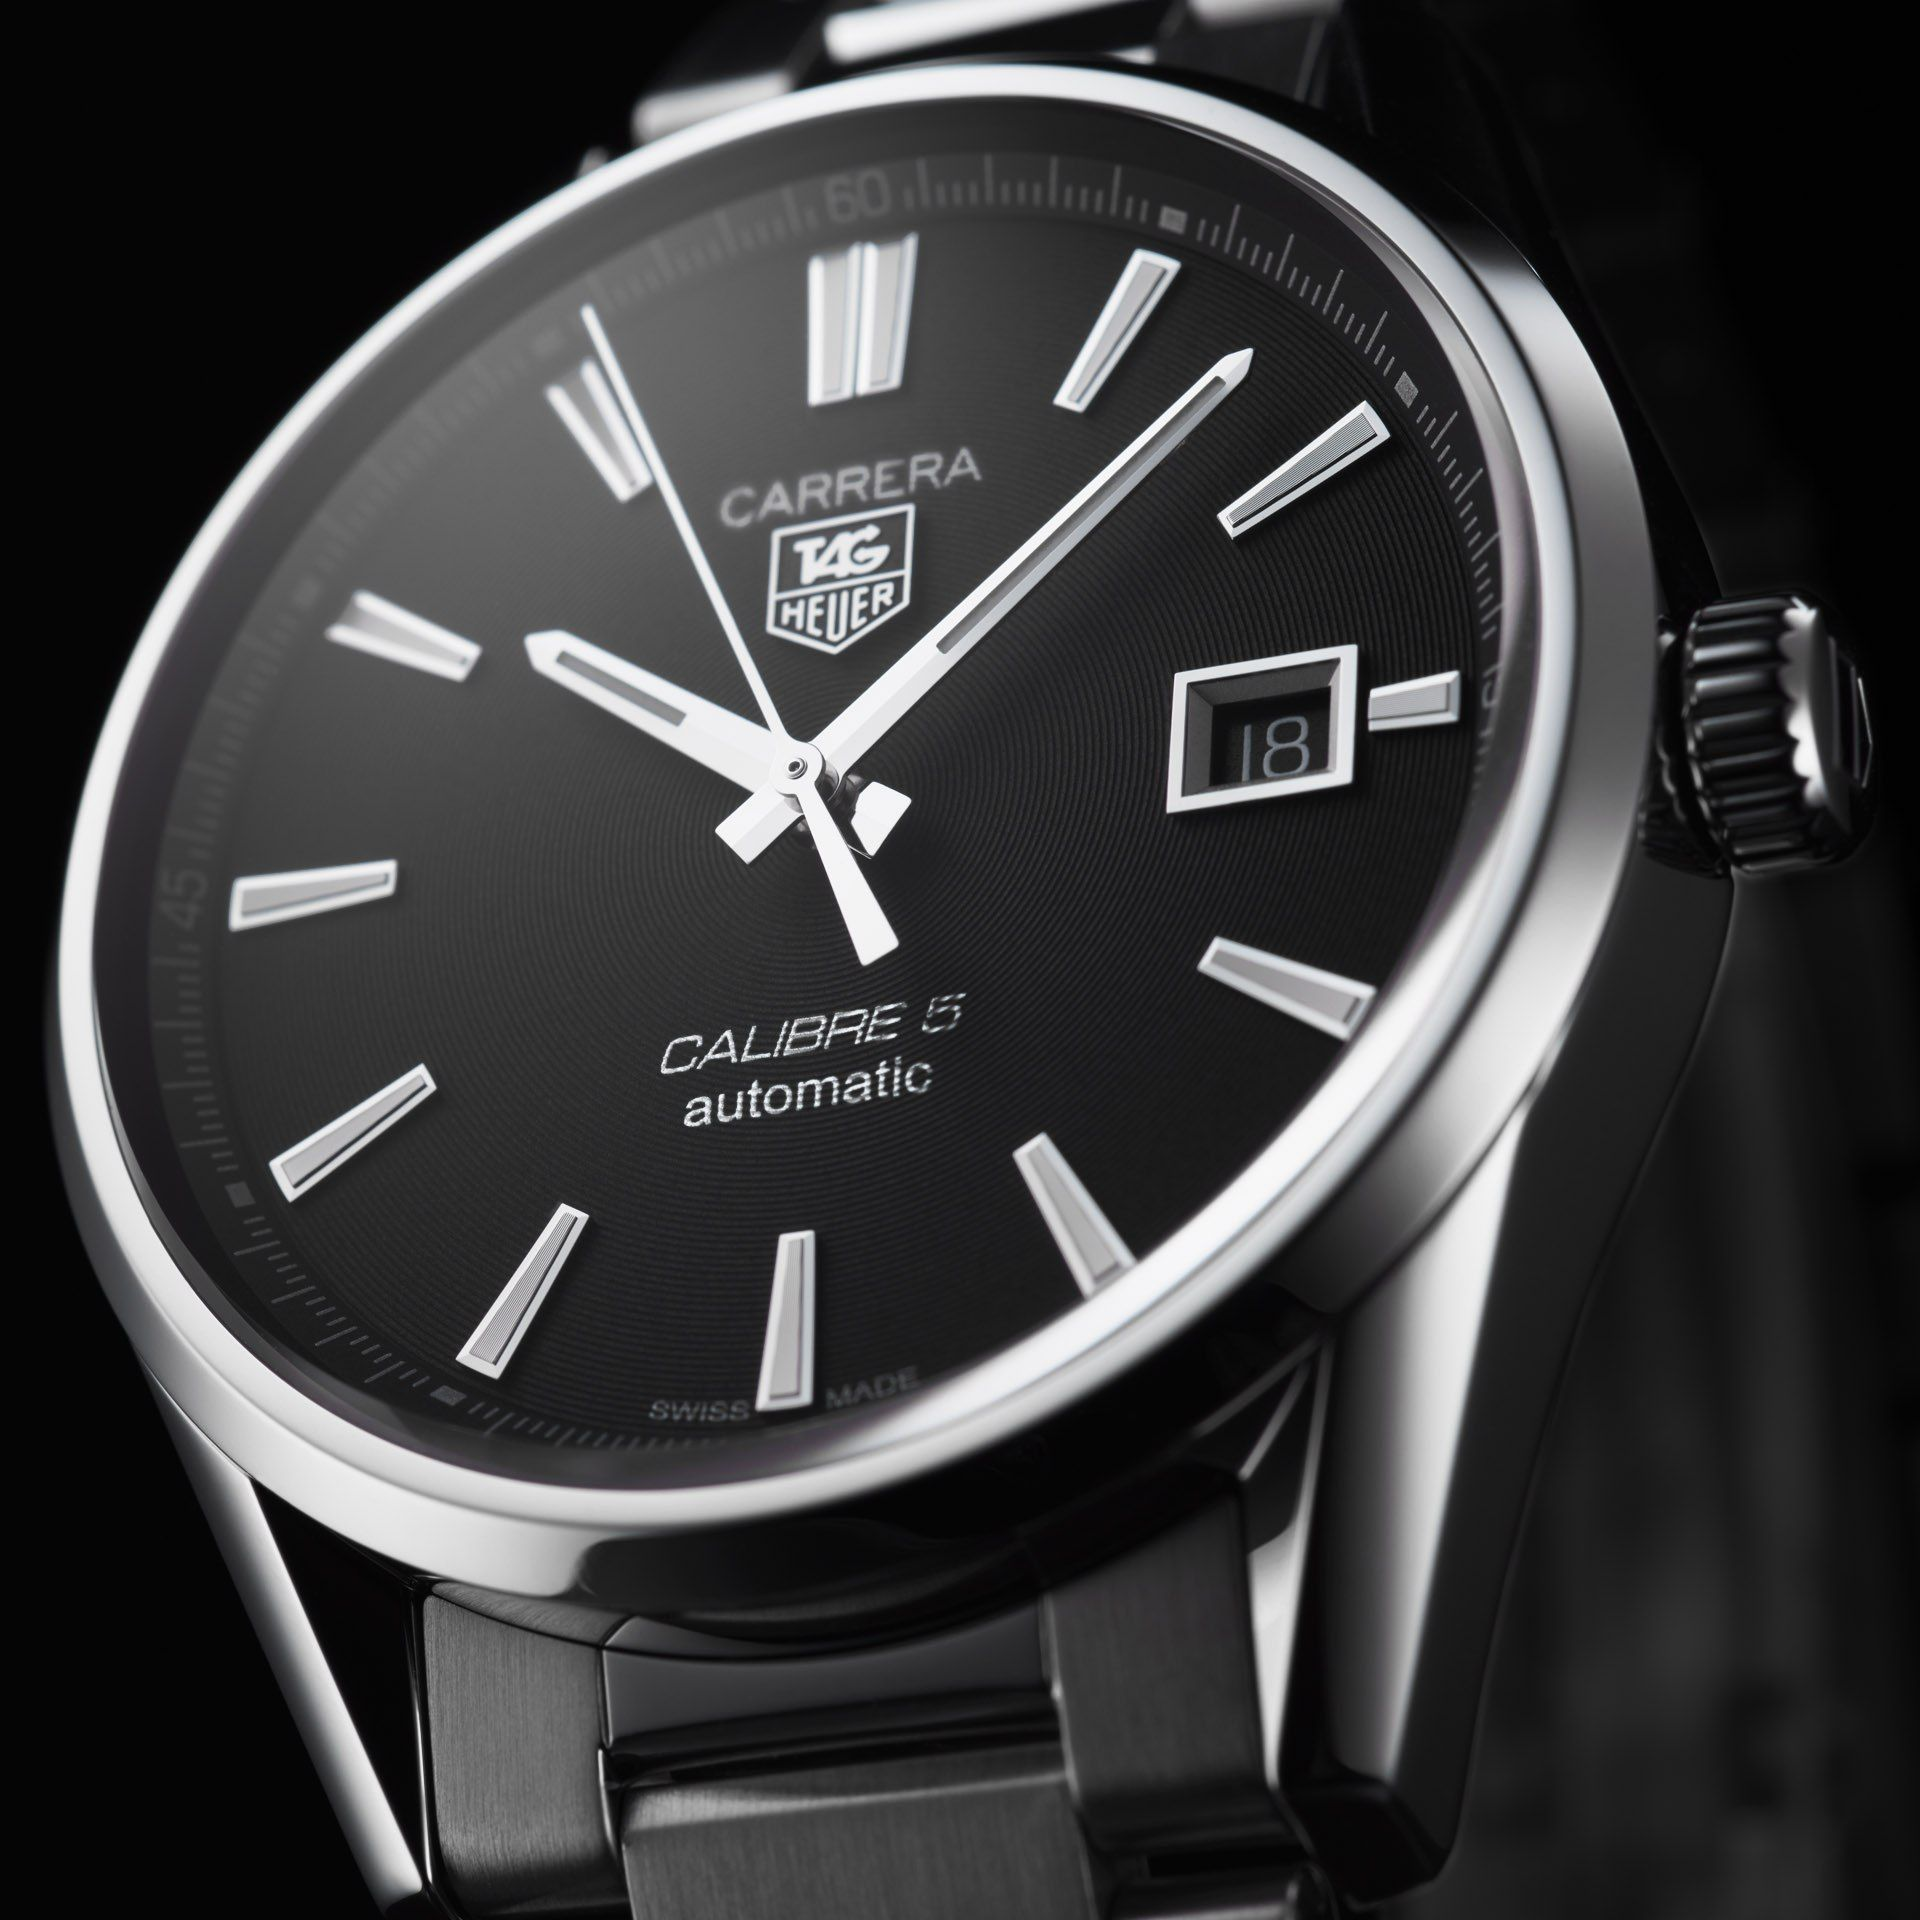 TAG HEUER CARRERA Calibre 5 in 2019 | Time tellers | Tag ...